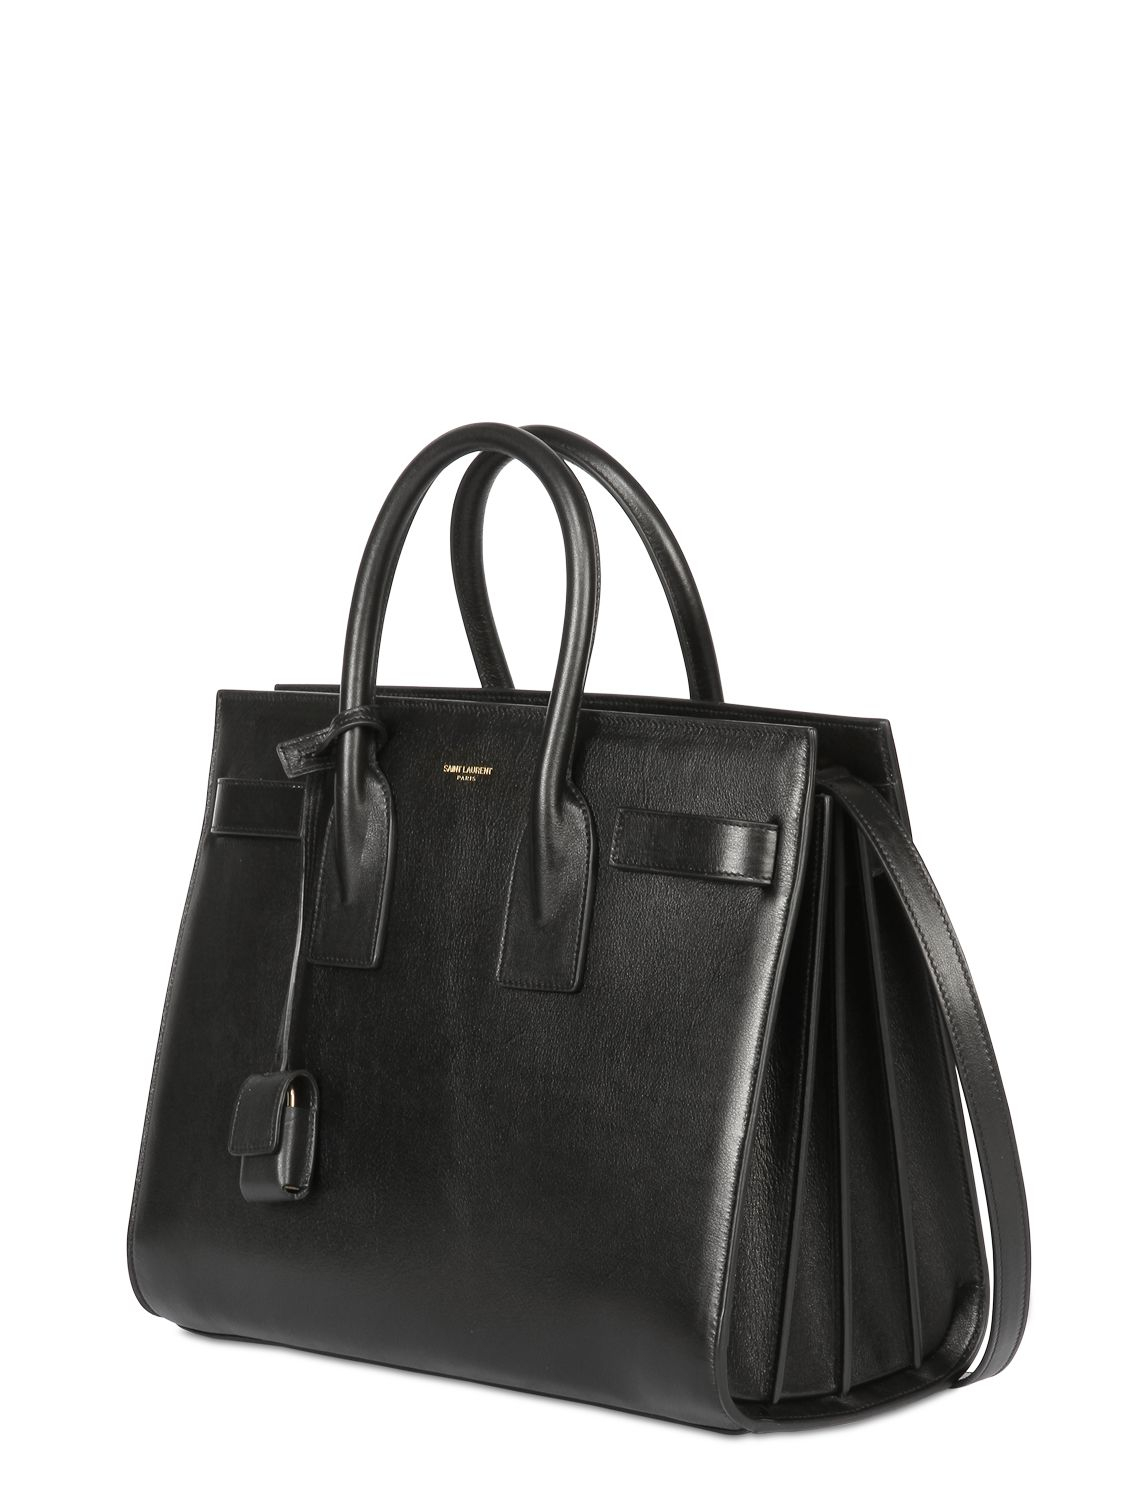 yves saint laurent leather handbag - classic small sac de jour bag in black suede and leather